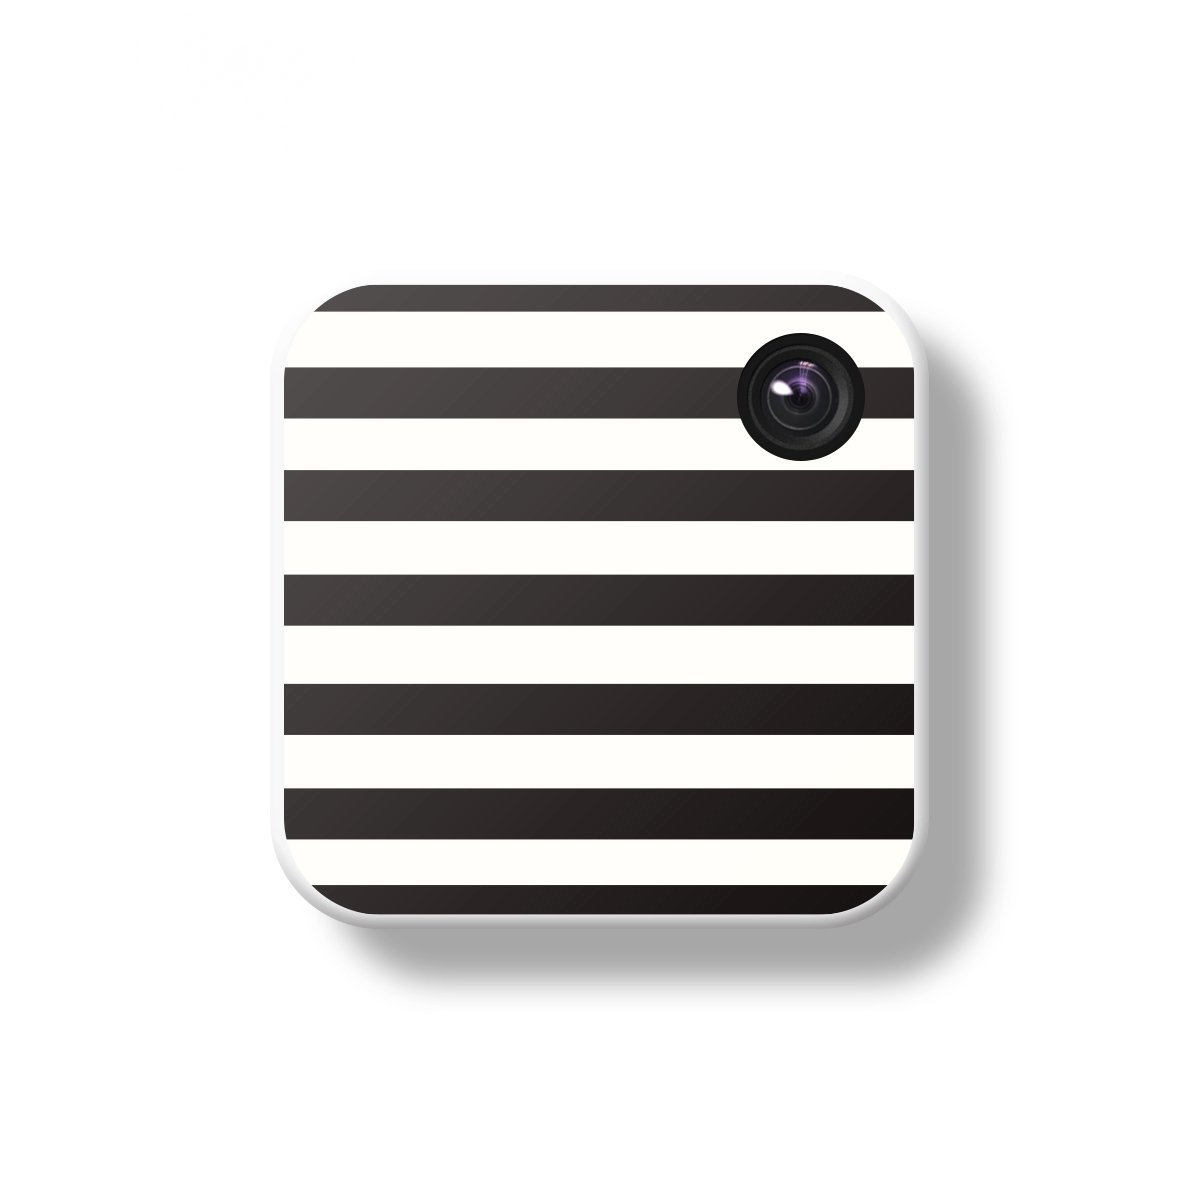 Qlippie Clip on Wearable Mini Digital Video Camera 1080P Full HD with Built-in Wi-Fi by Qlippie